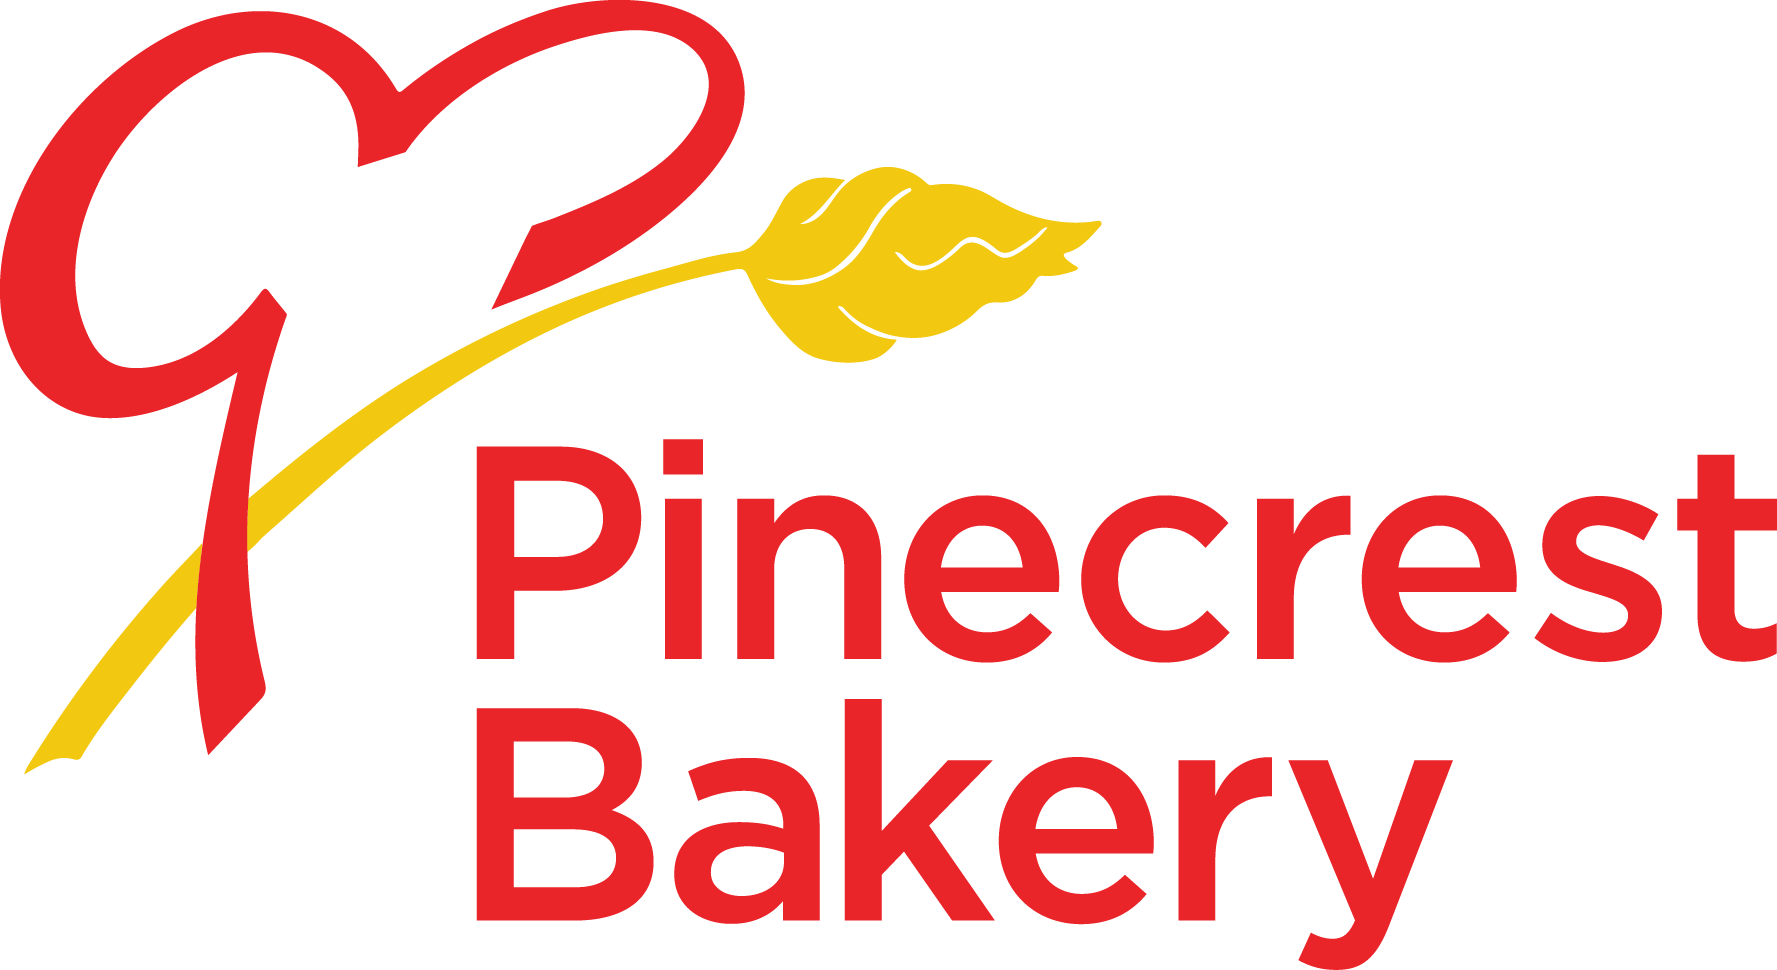 Pinecrest Bakery